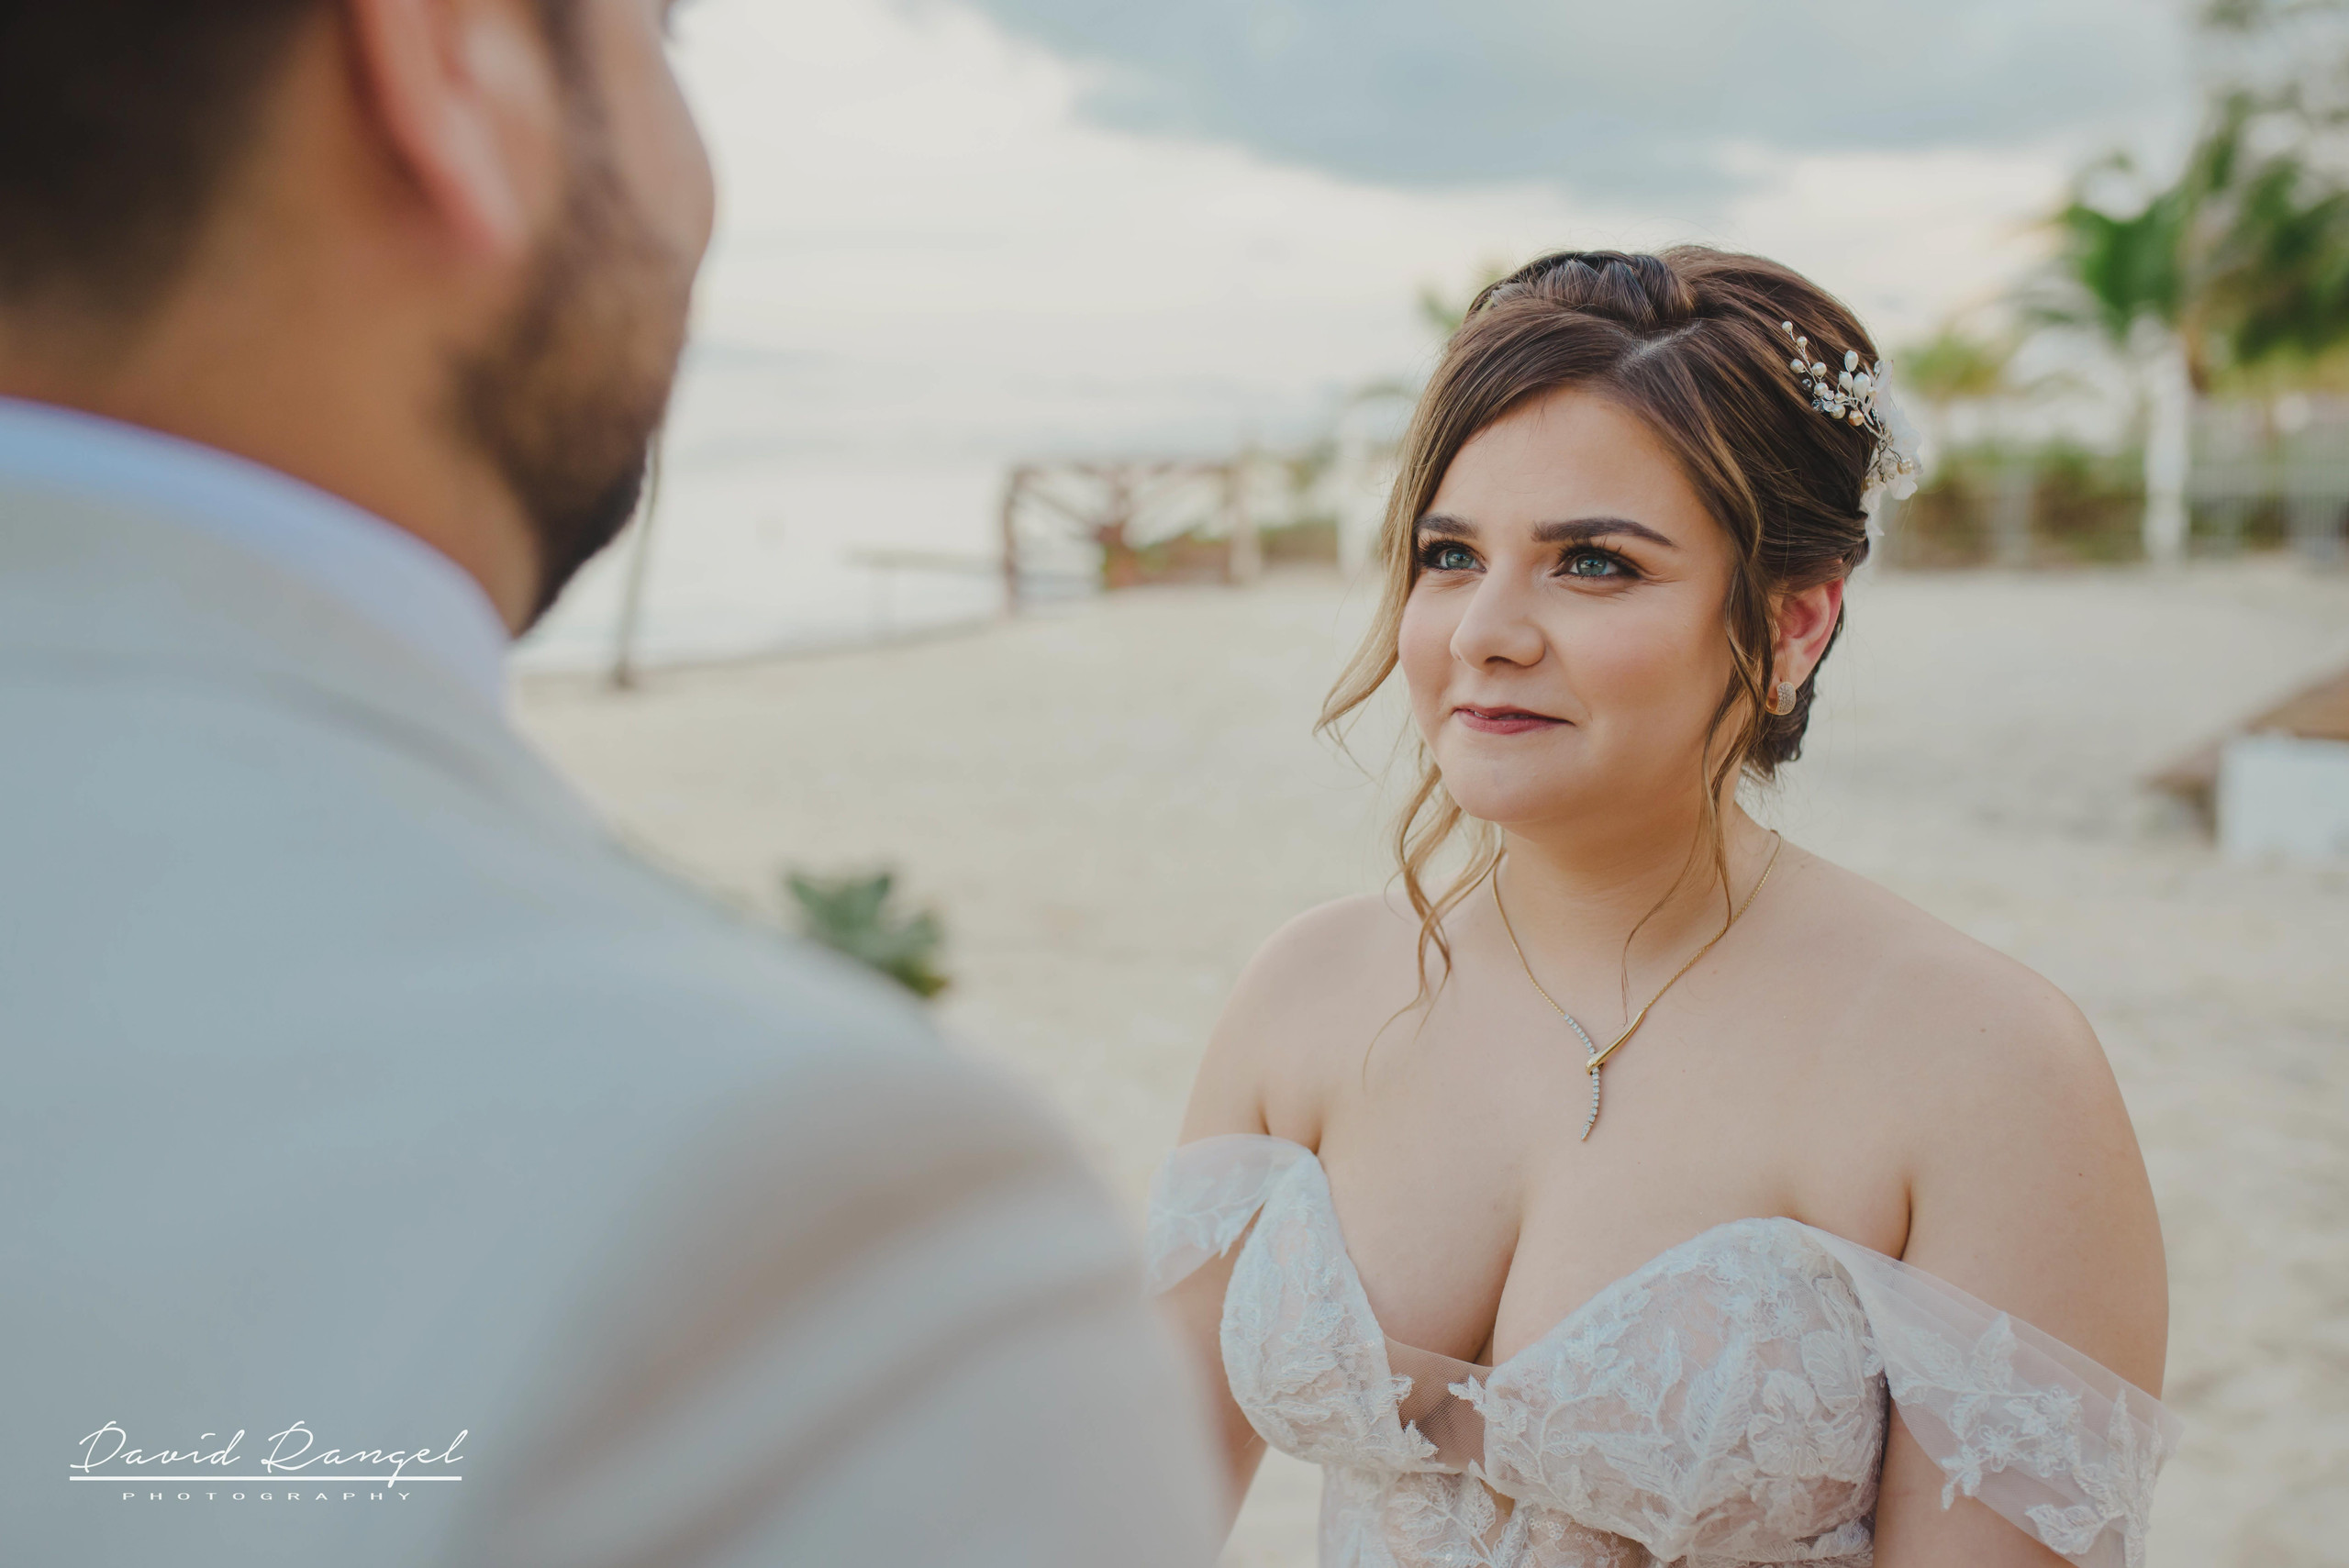 groom+bride+wedding+ceremony+dress+villa+chenera+isla+blanca+costa+mujeres+garden+beach+chaman+traditional+mayan+wedding+green+eyes+conection